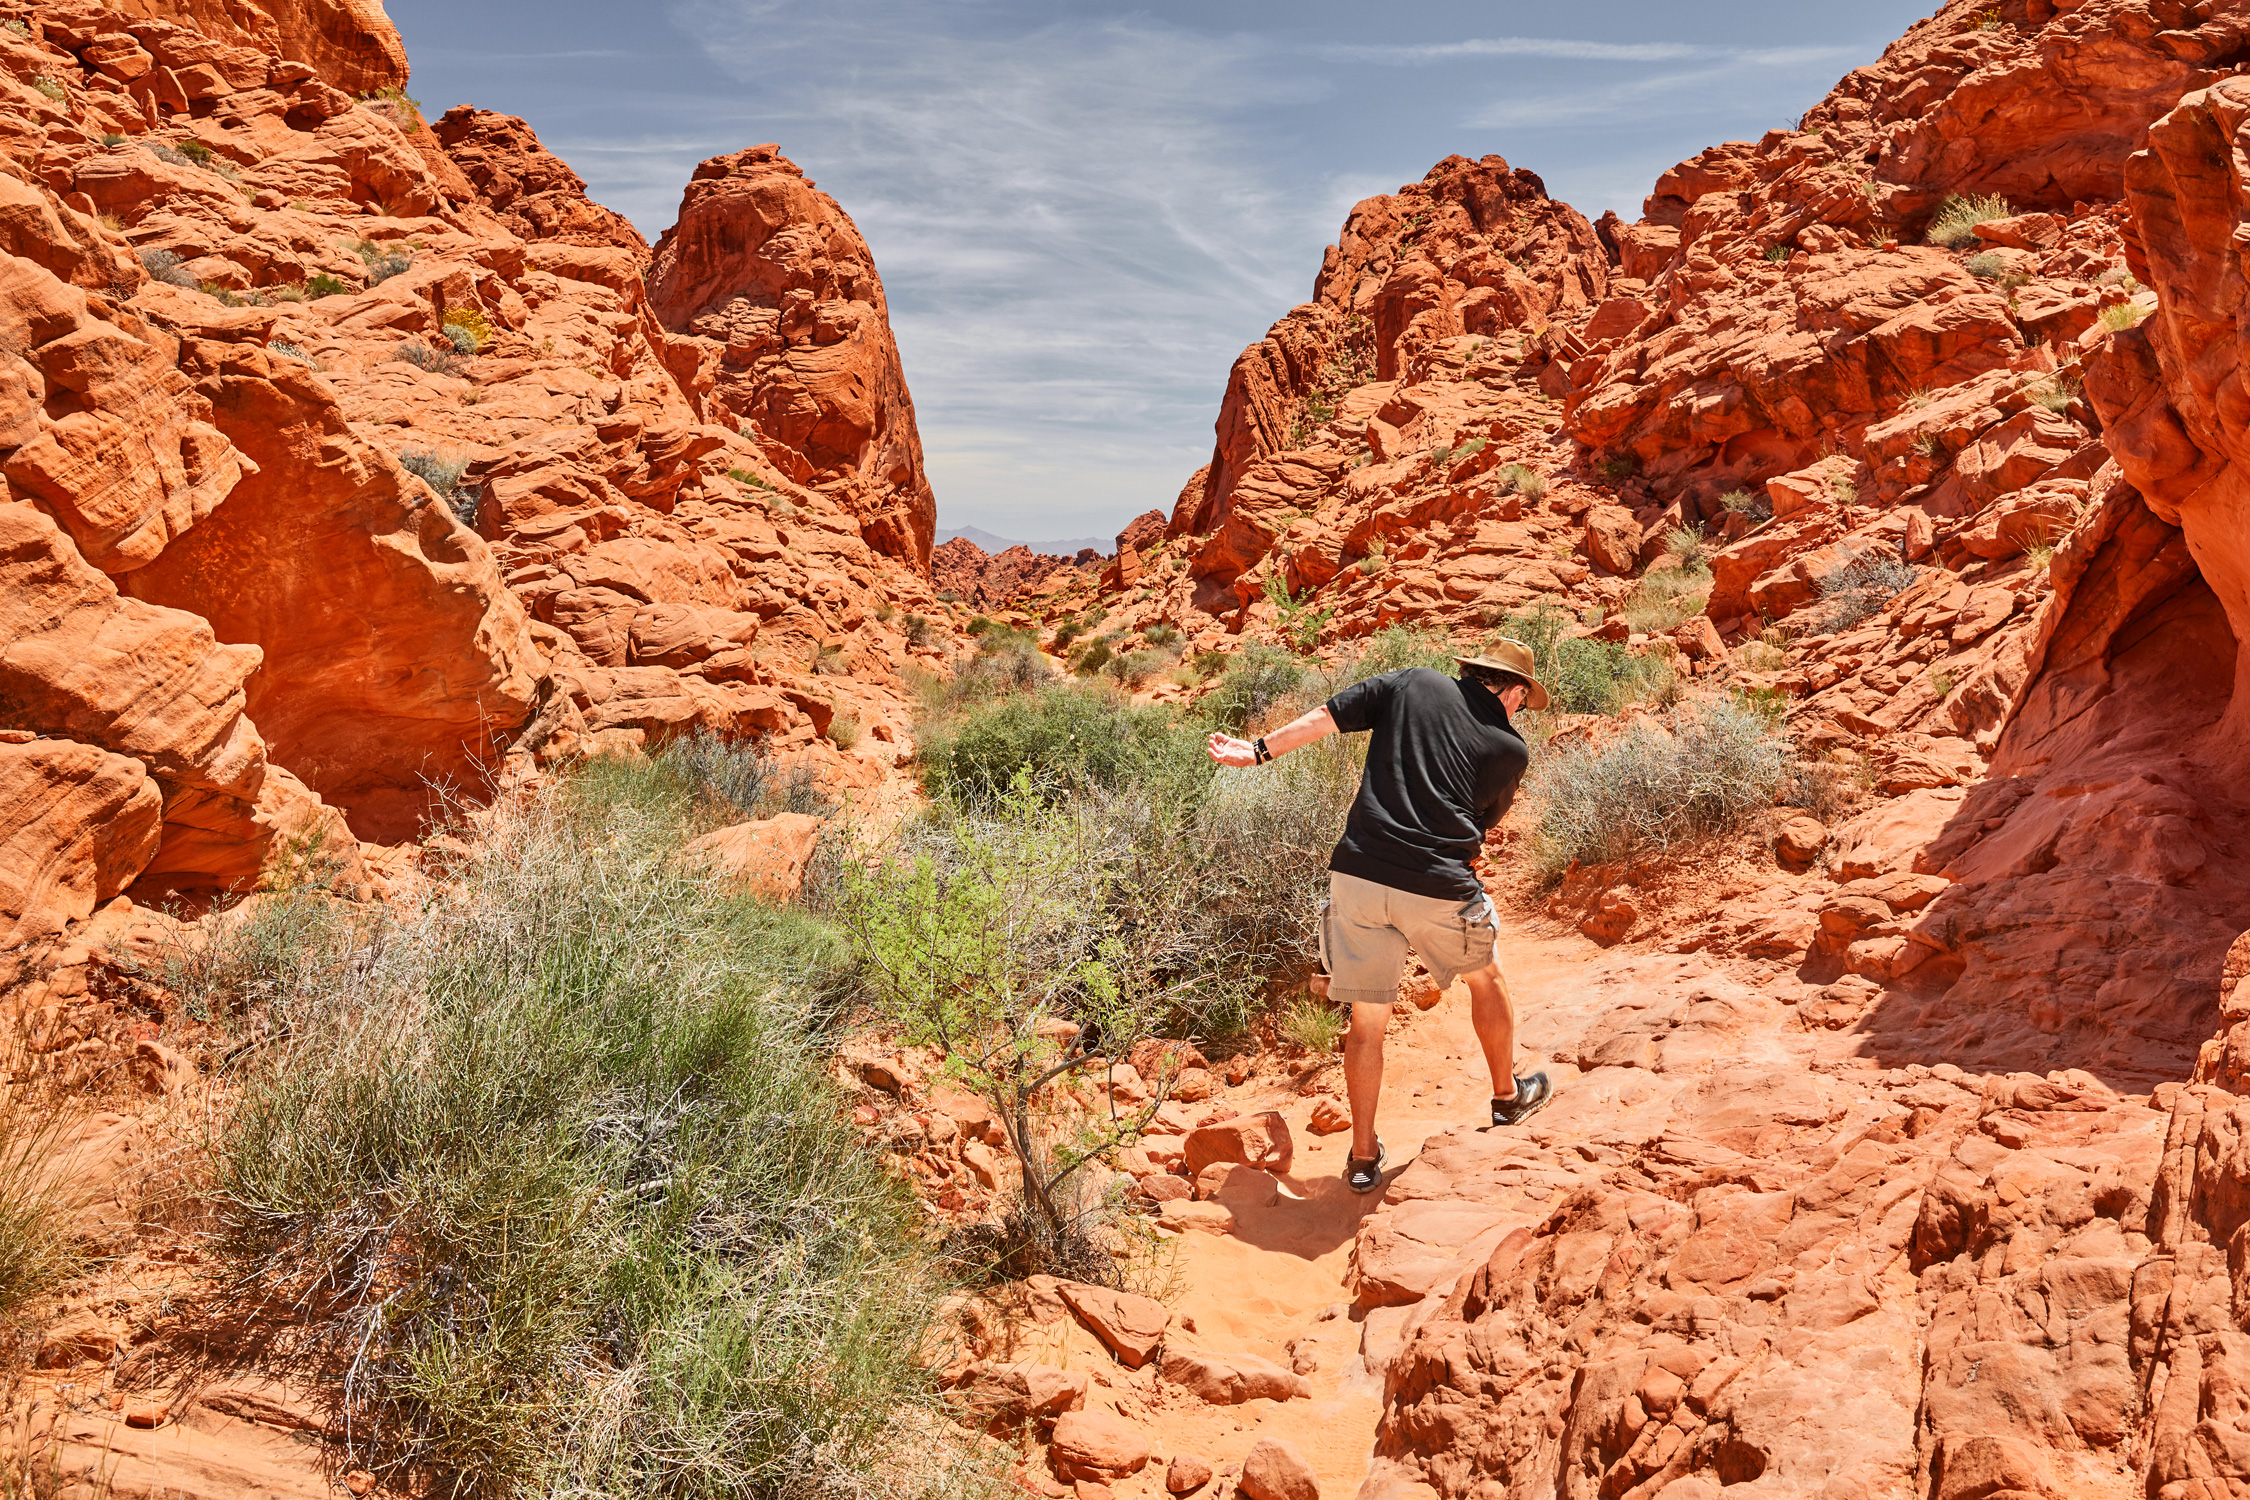 Dad Hits The Road - Valley of Fire State Park - Stephen Denton Photography -  Los Angeles, California based  Commercial Photographer